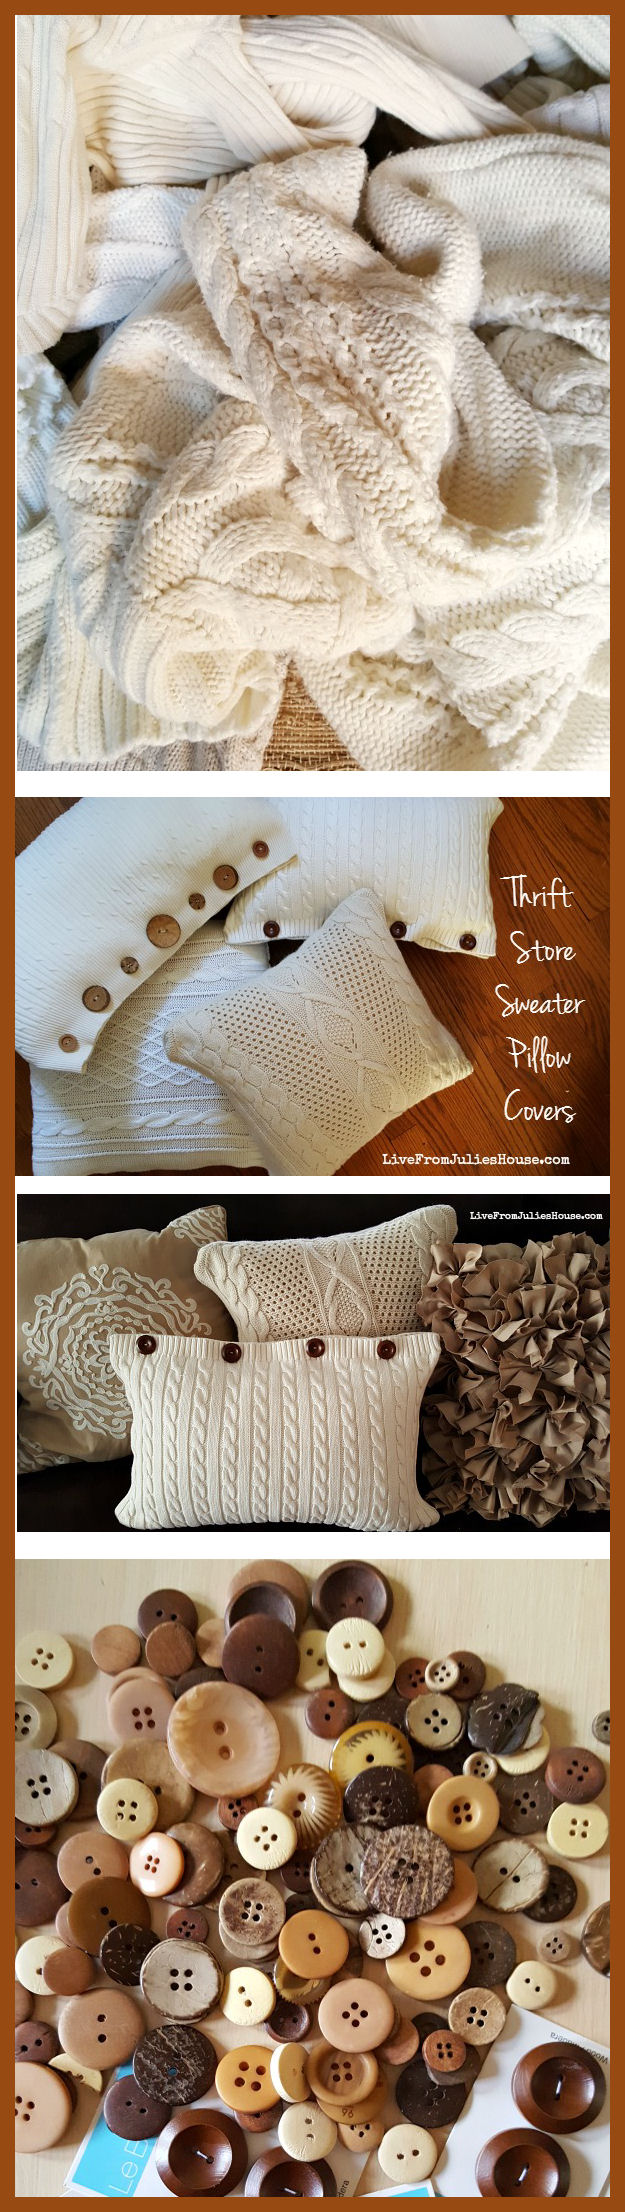 Thrift Store Sweater Pillow Tutorial - Live from Julie s House